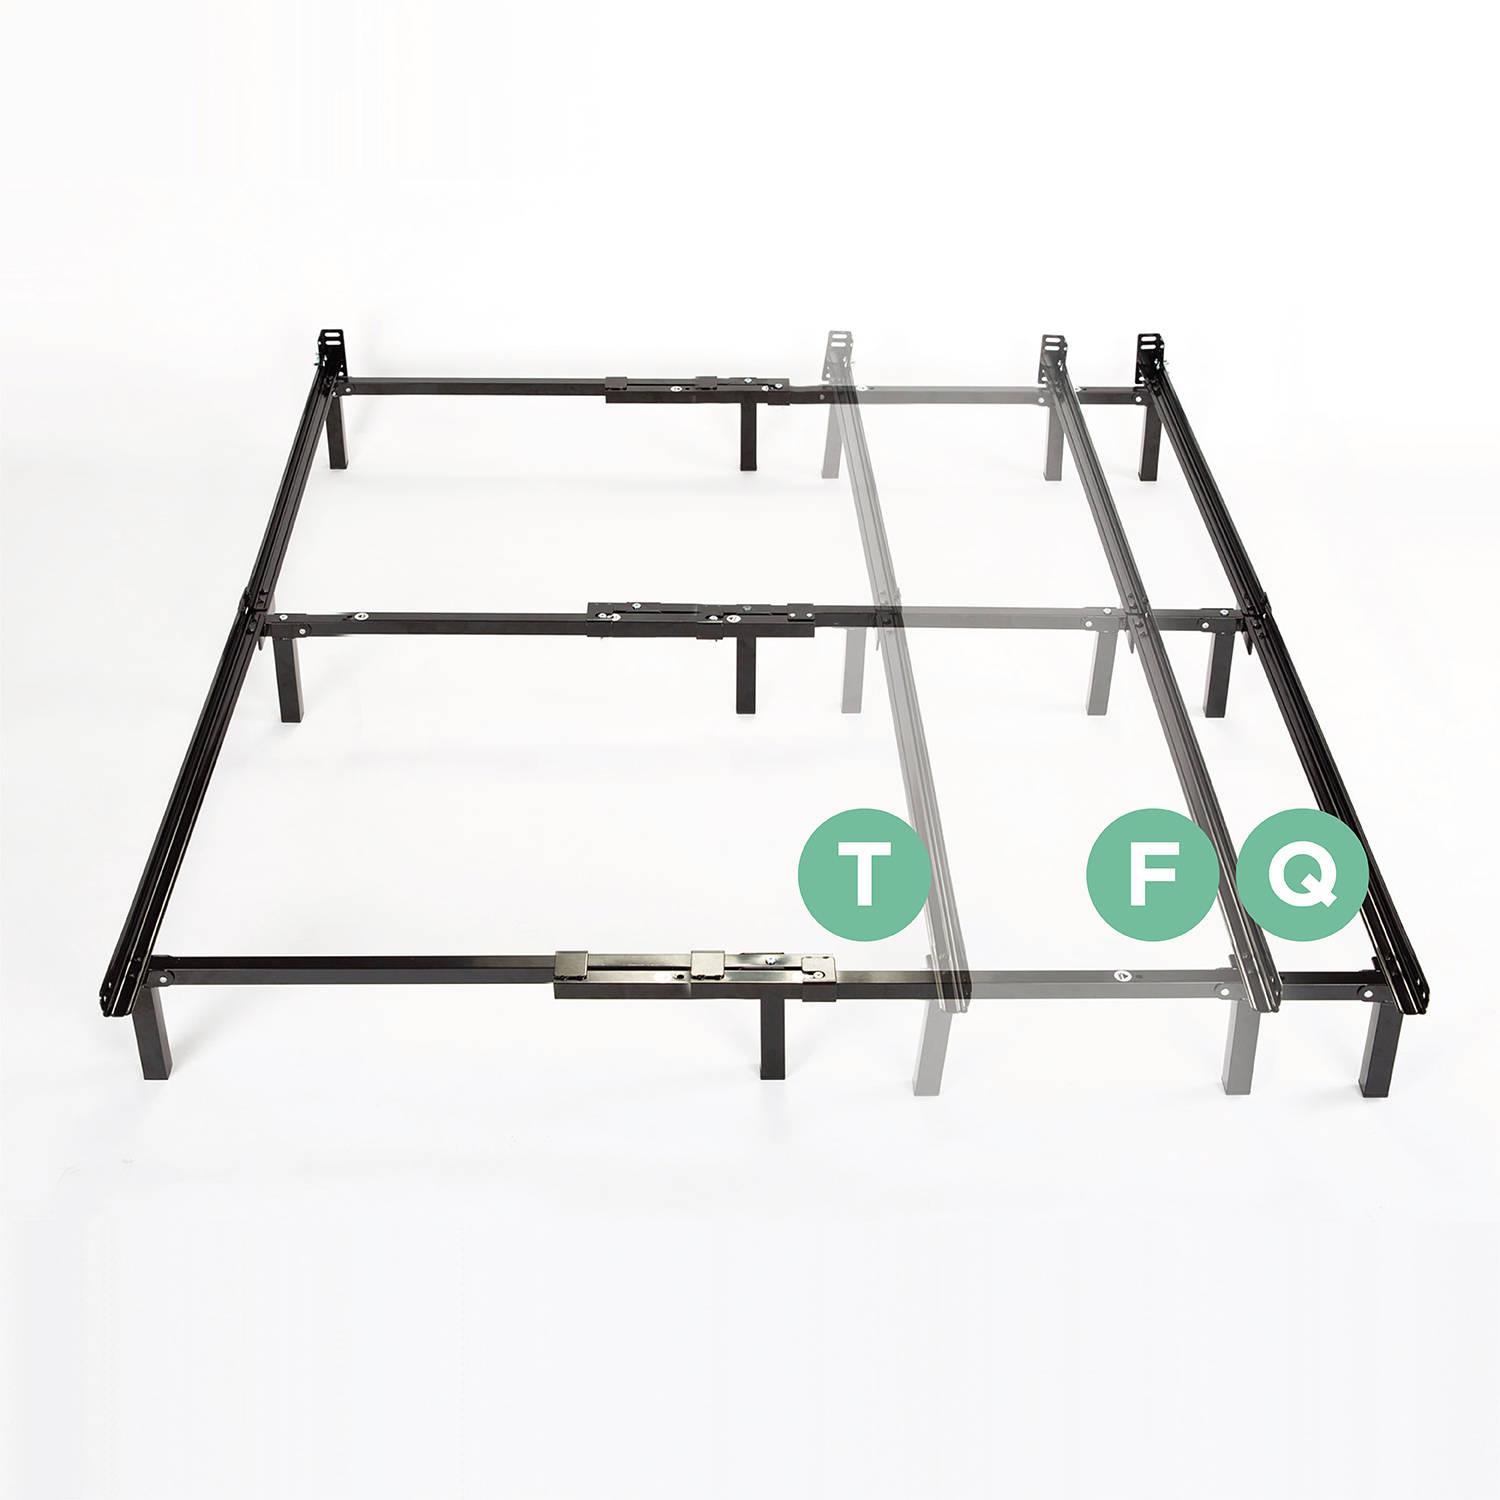 "Spa Sensations Compack 7"" Adjustable Metal Bed Frame"